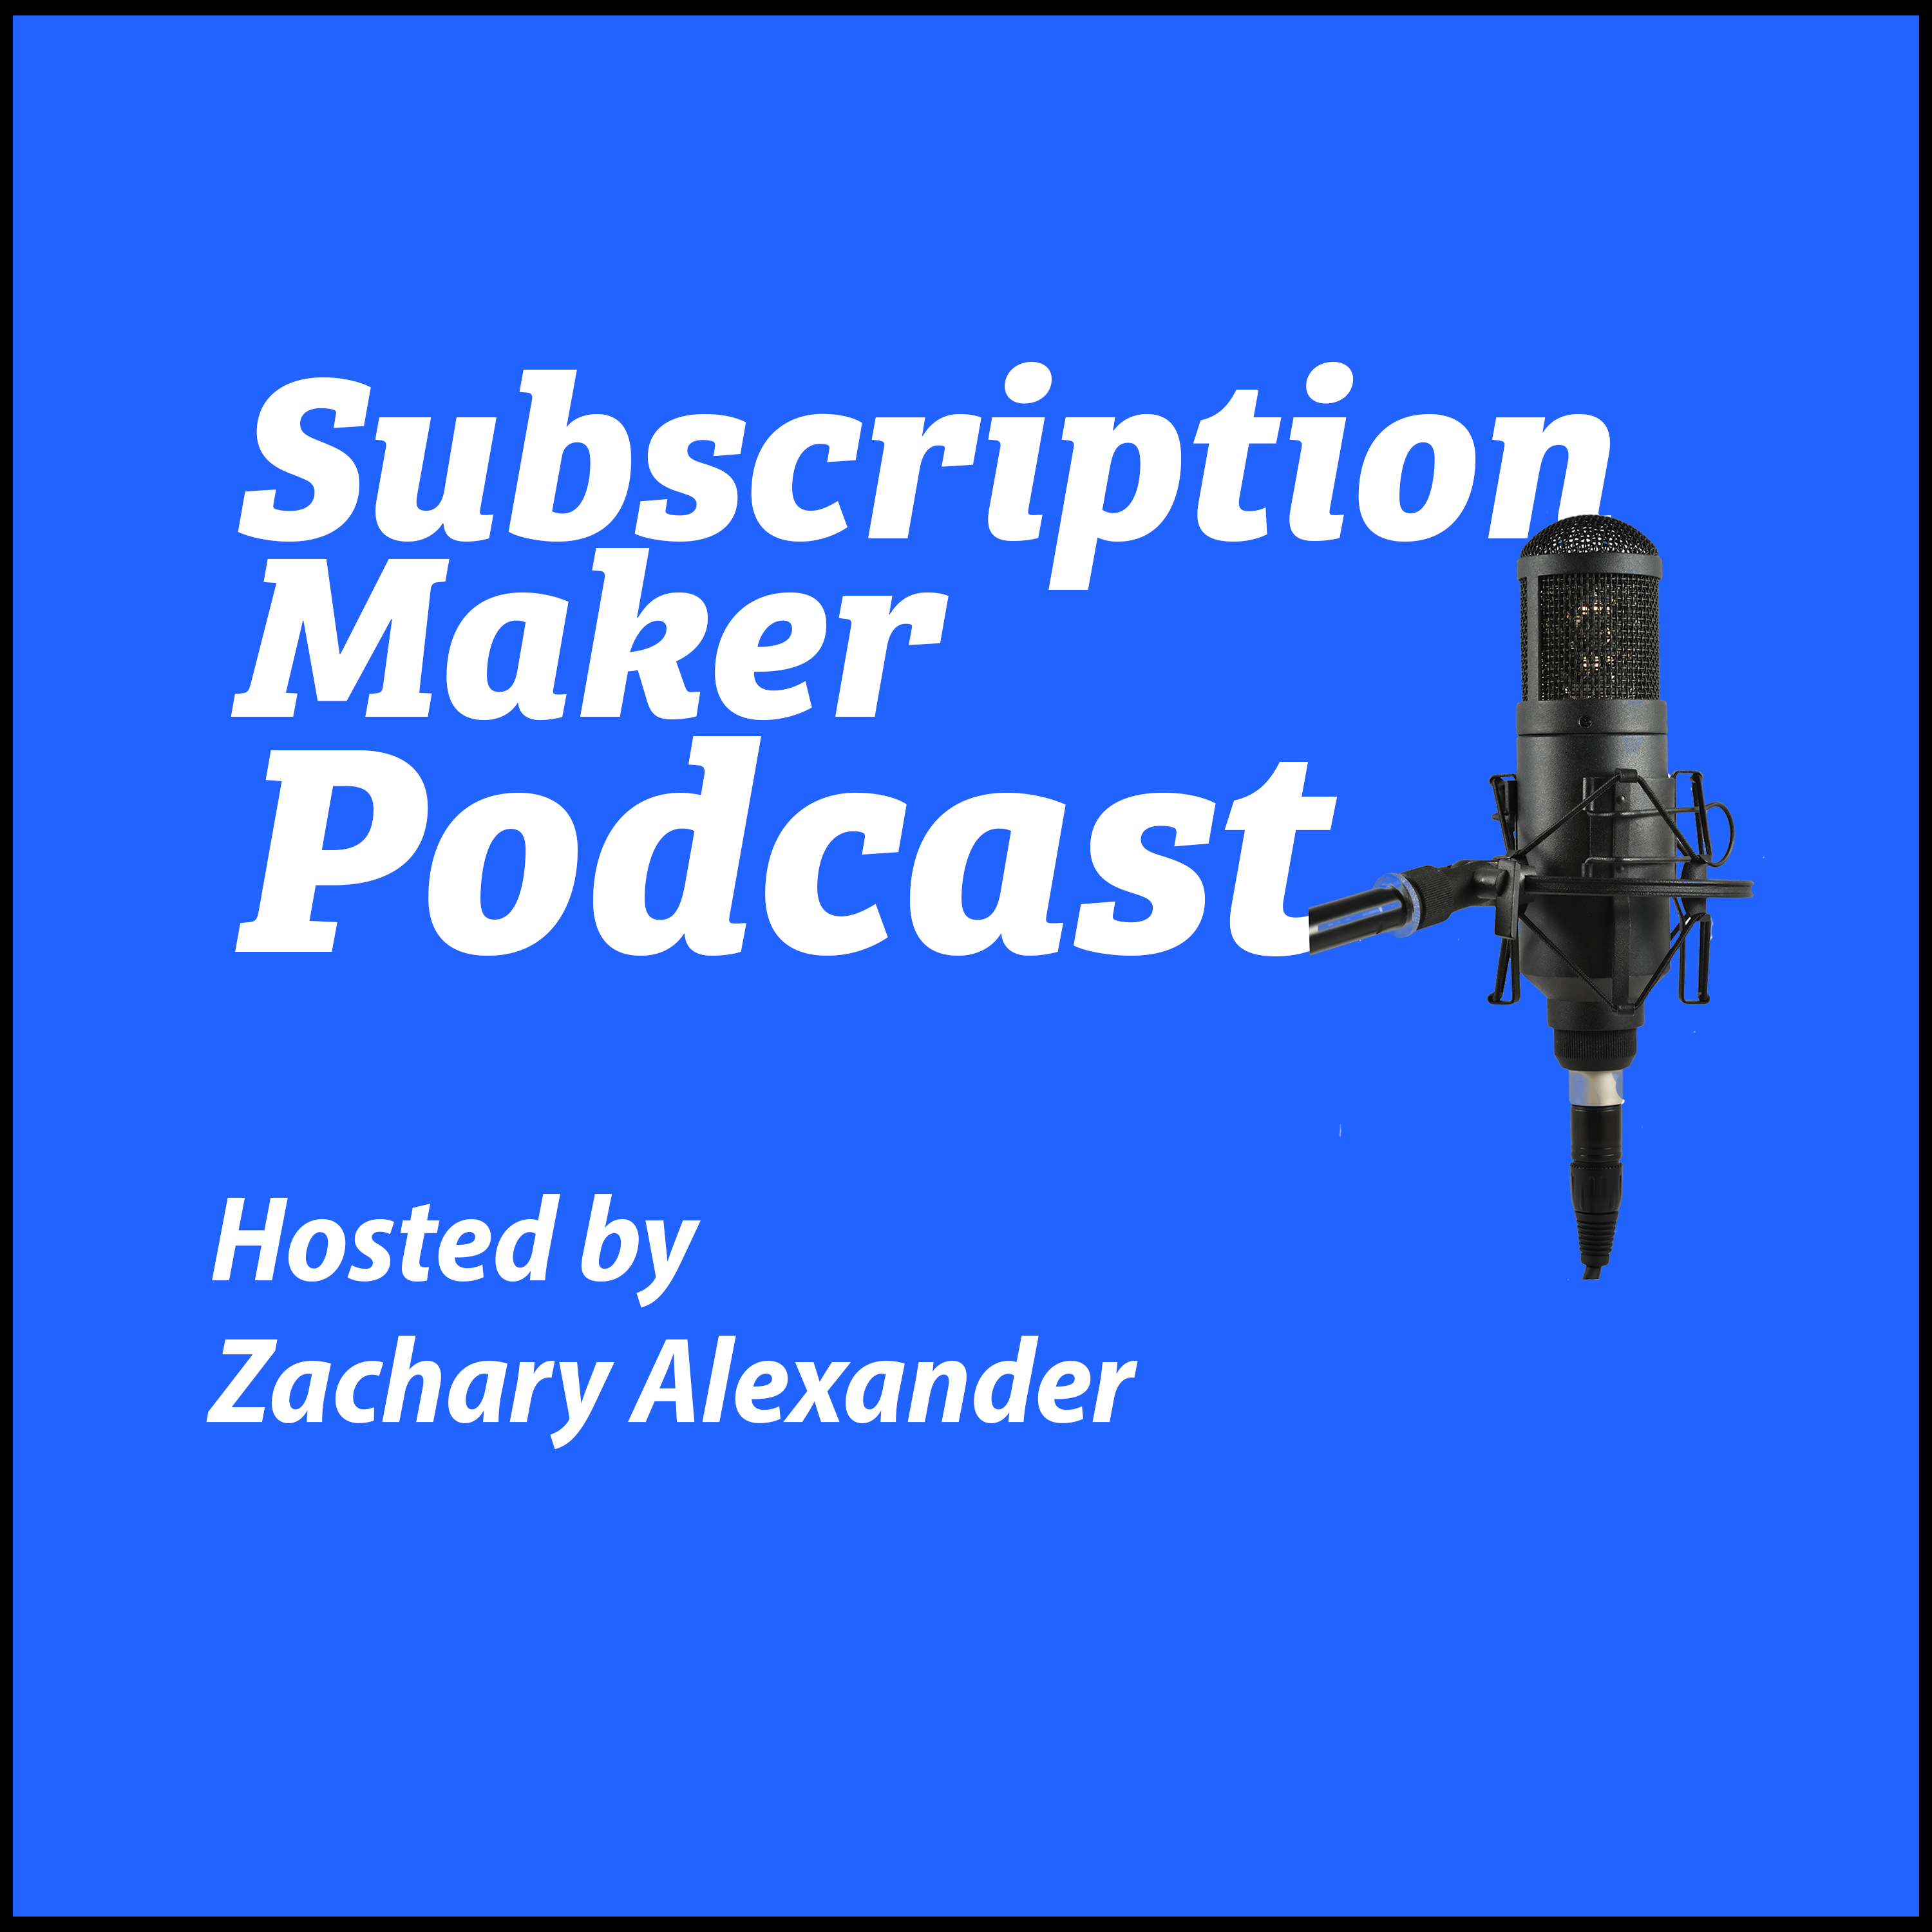 SubscriptionMaker Podcast